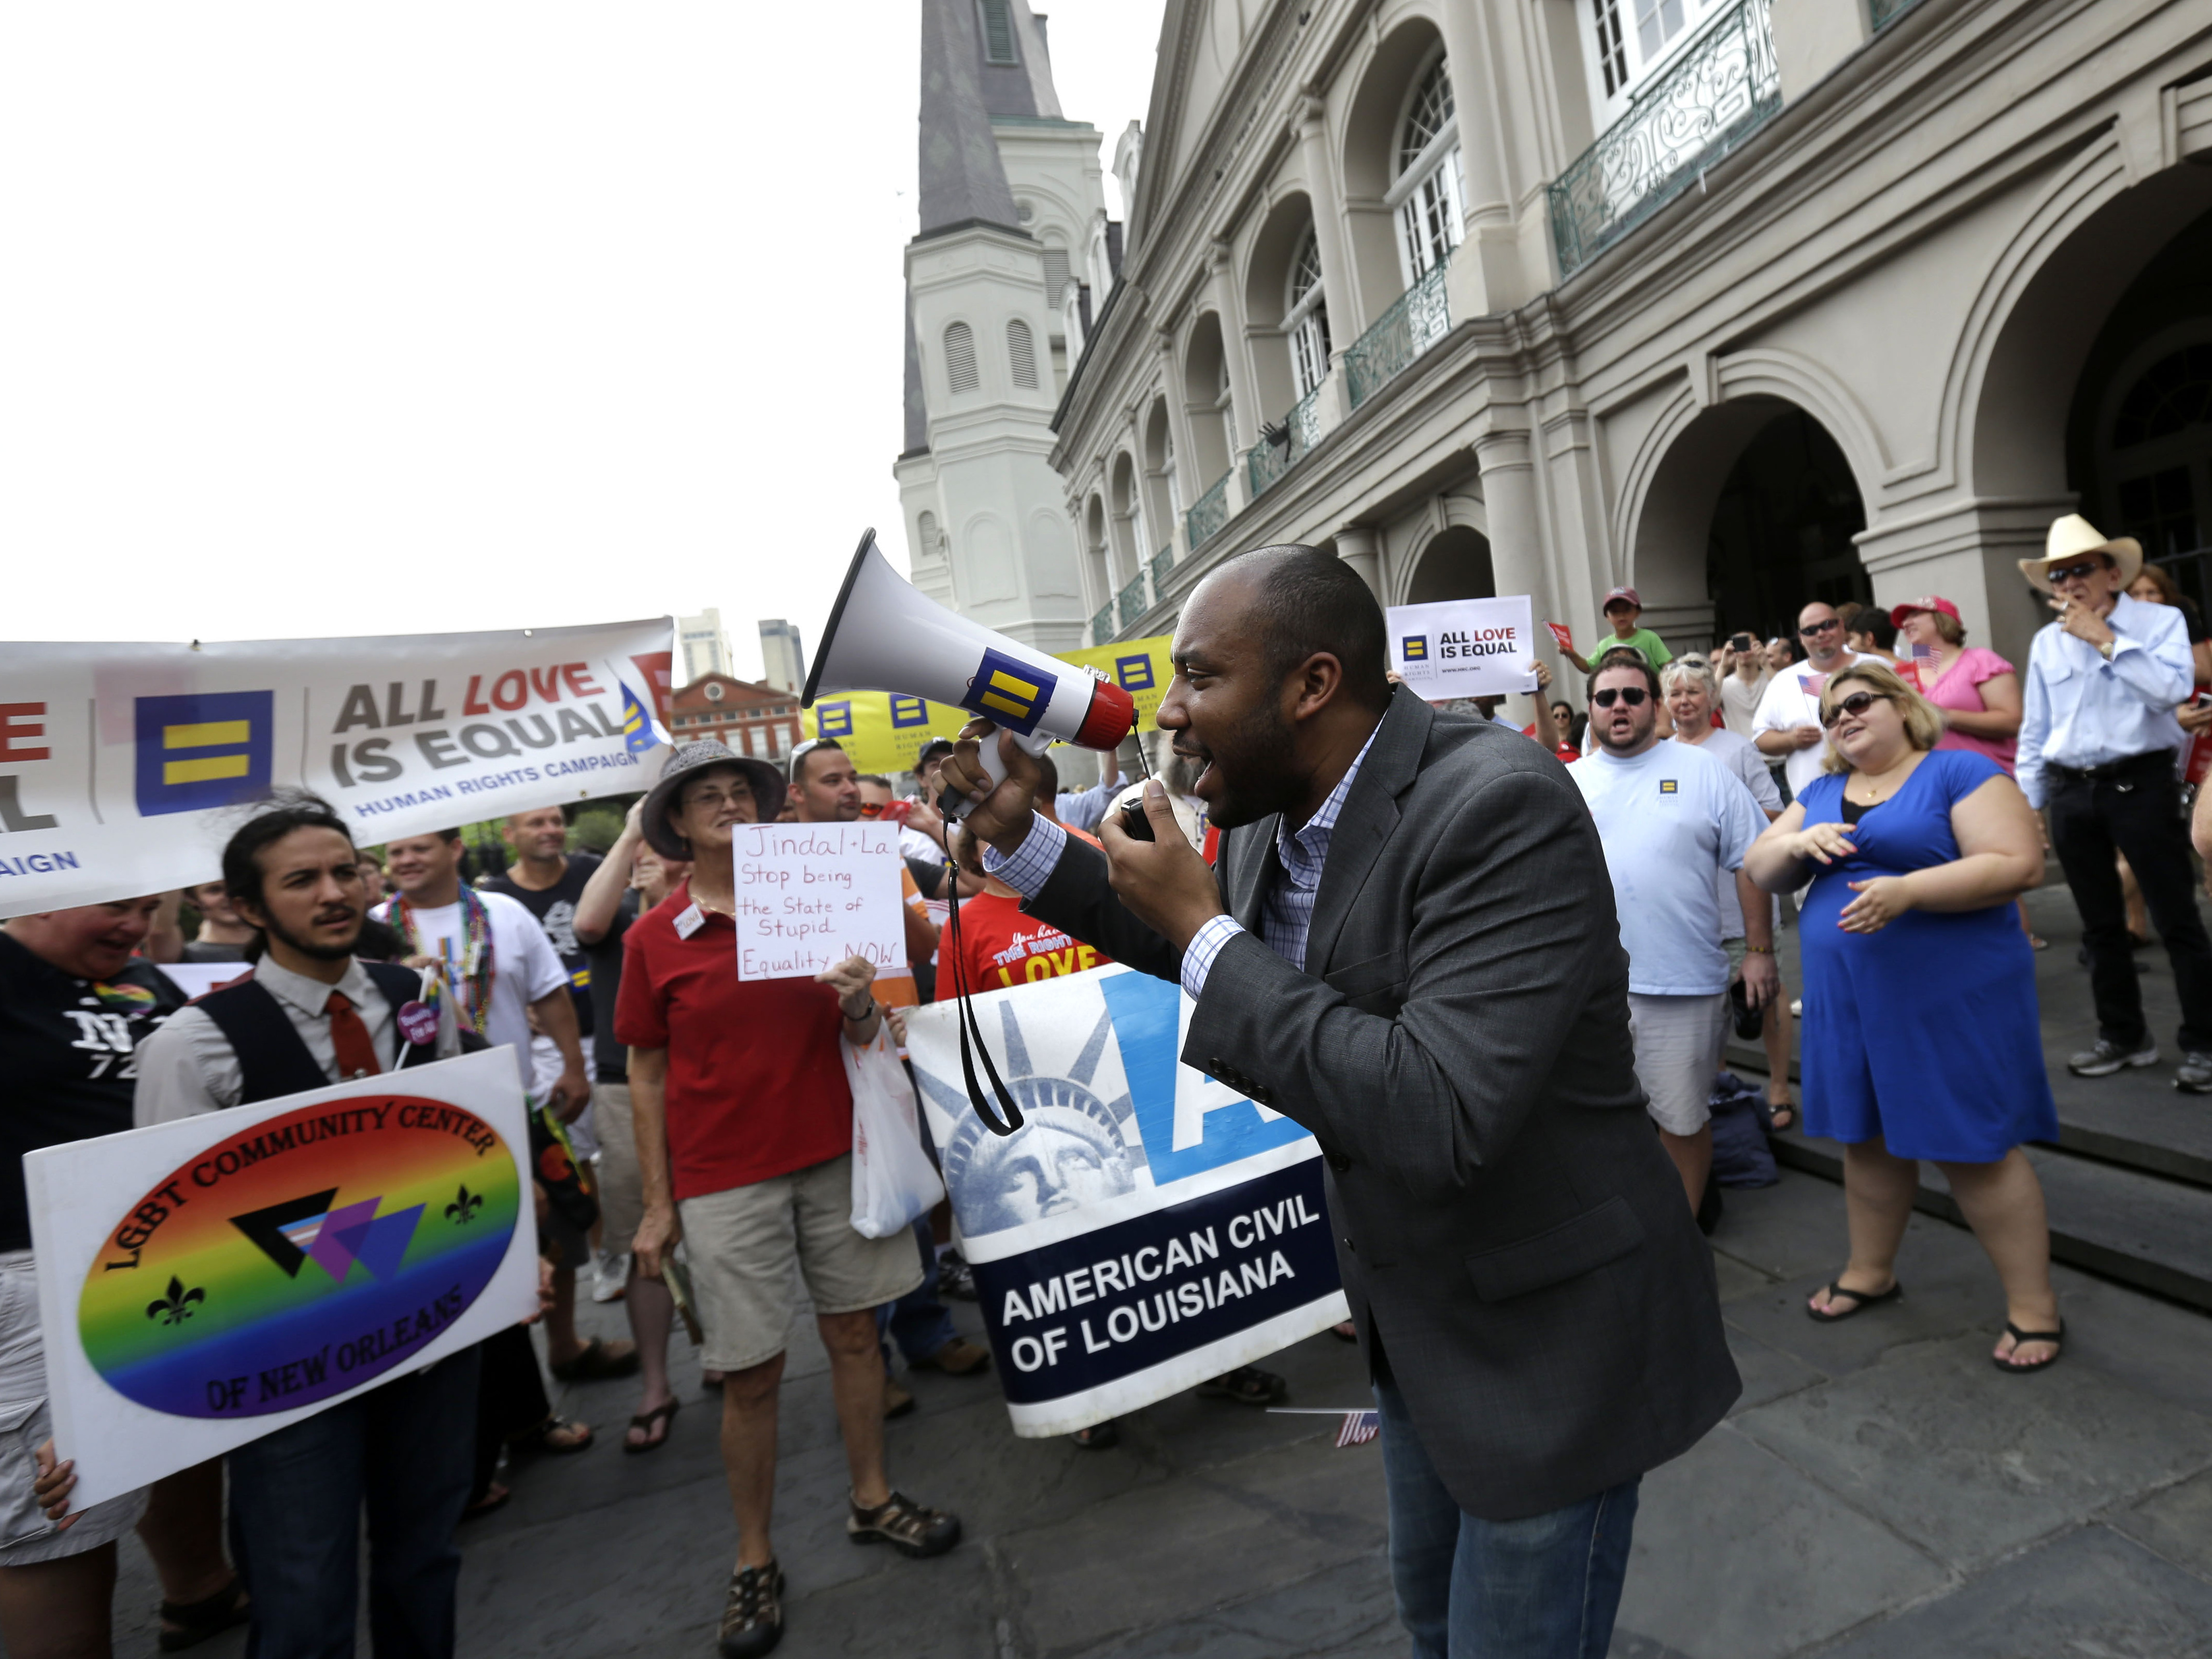 Federal Judge Upholds Louisiana's Same-Sex Marriage Ban